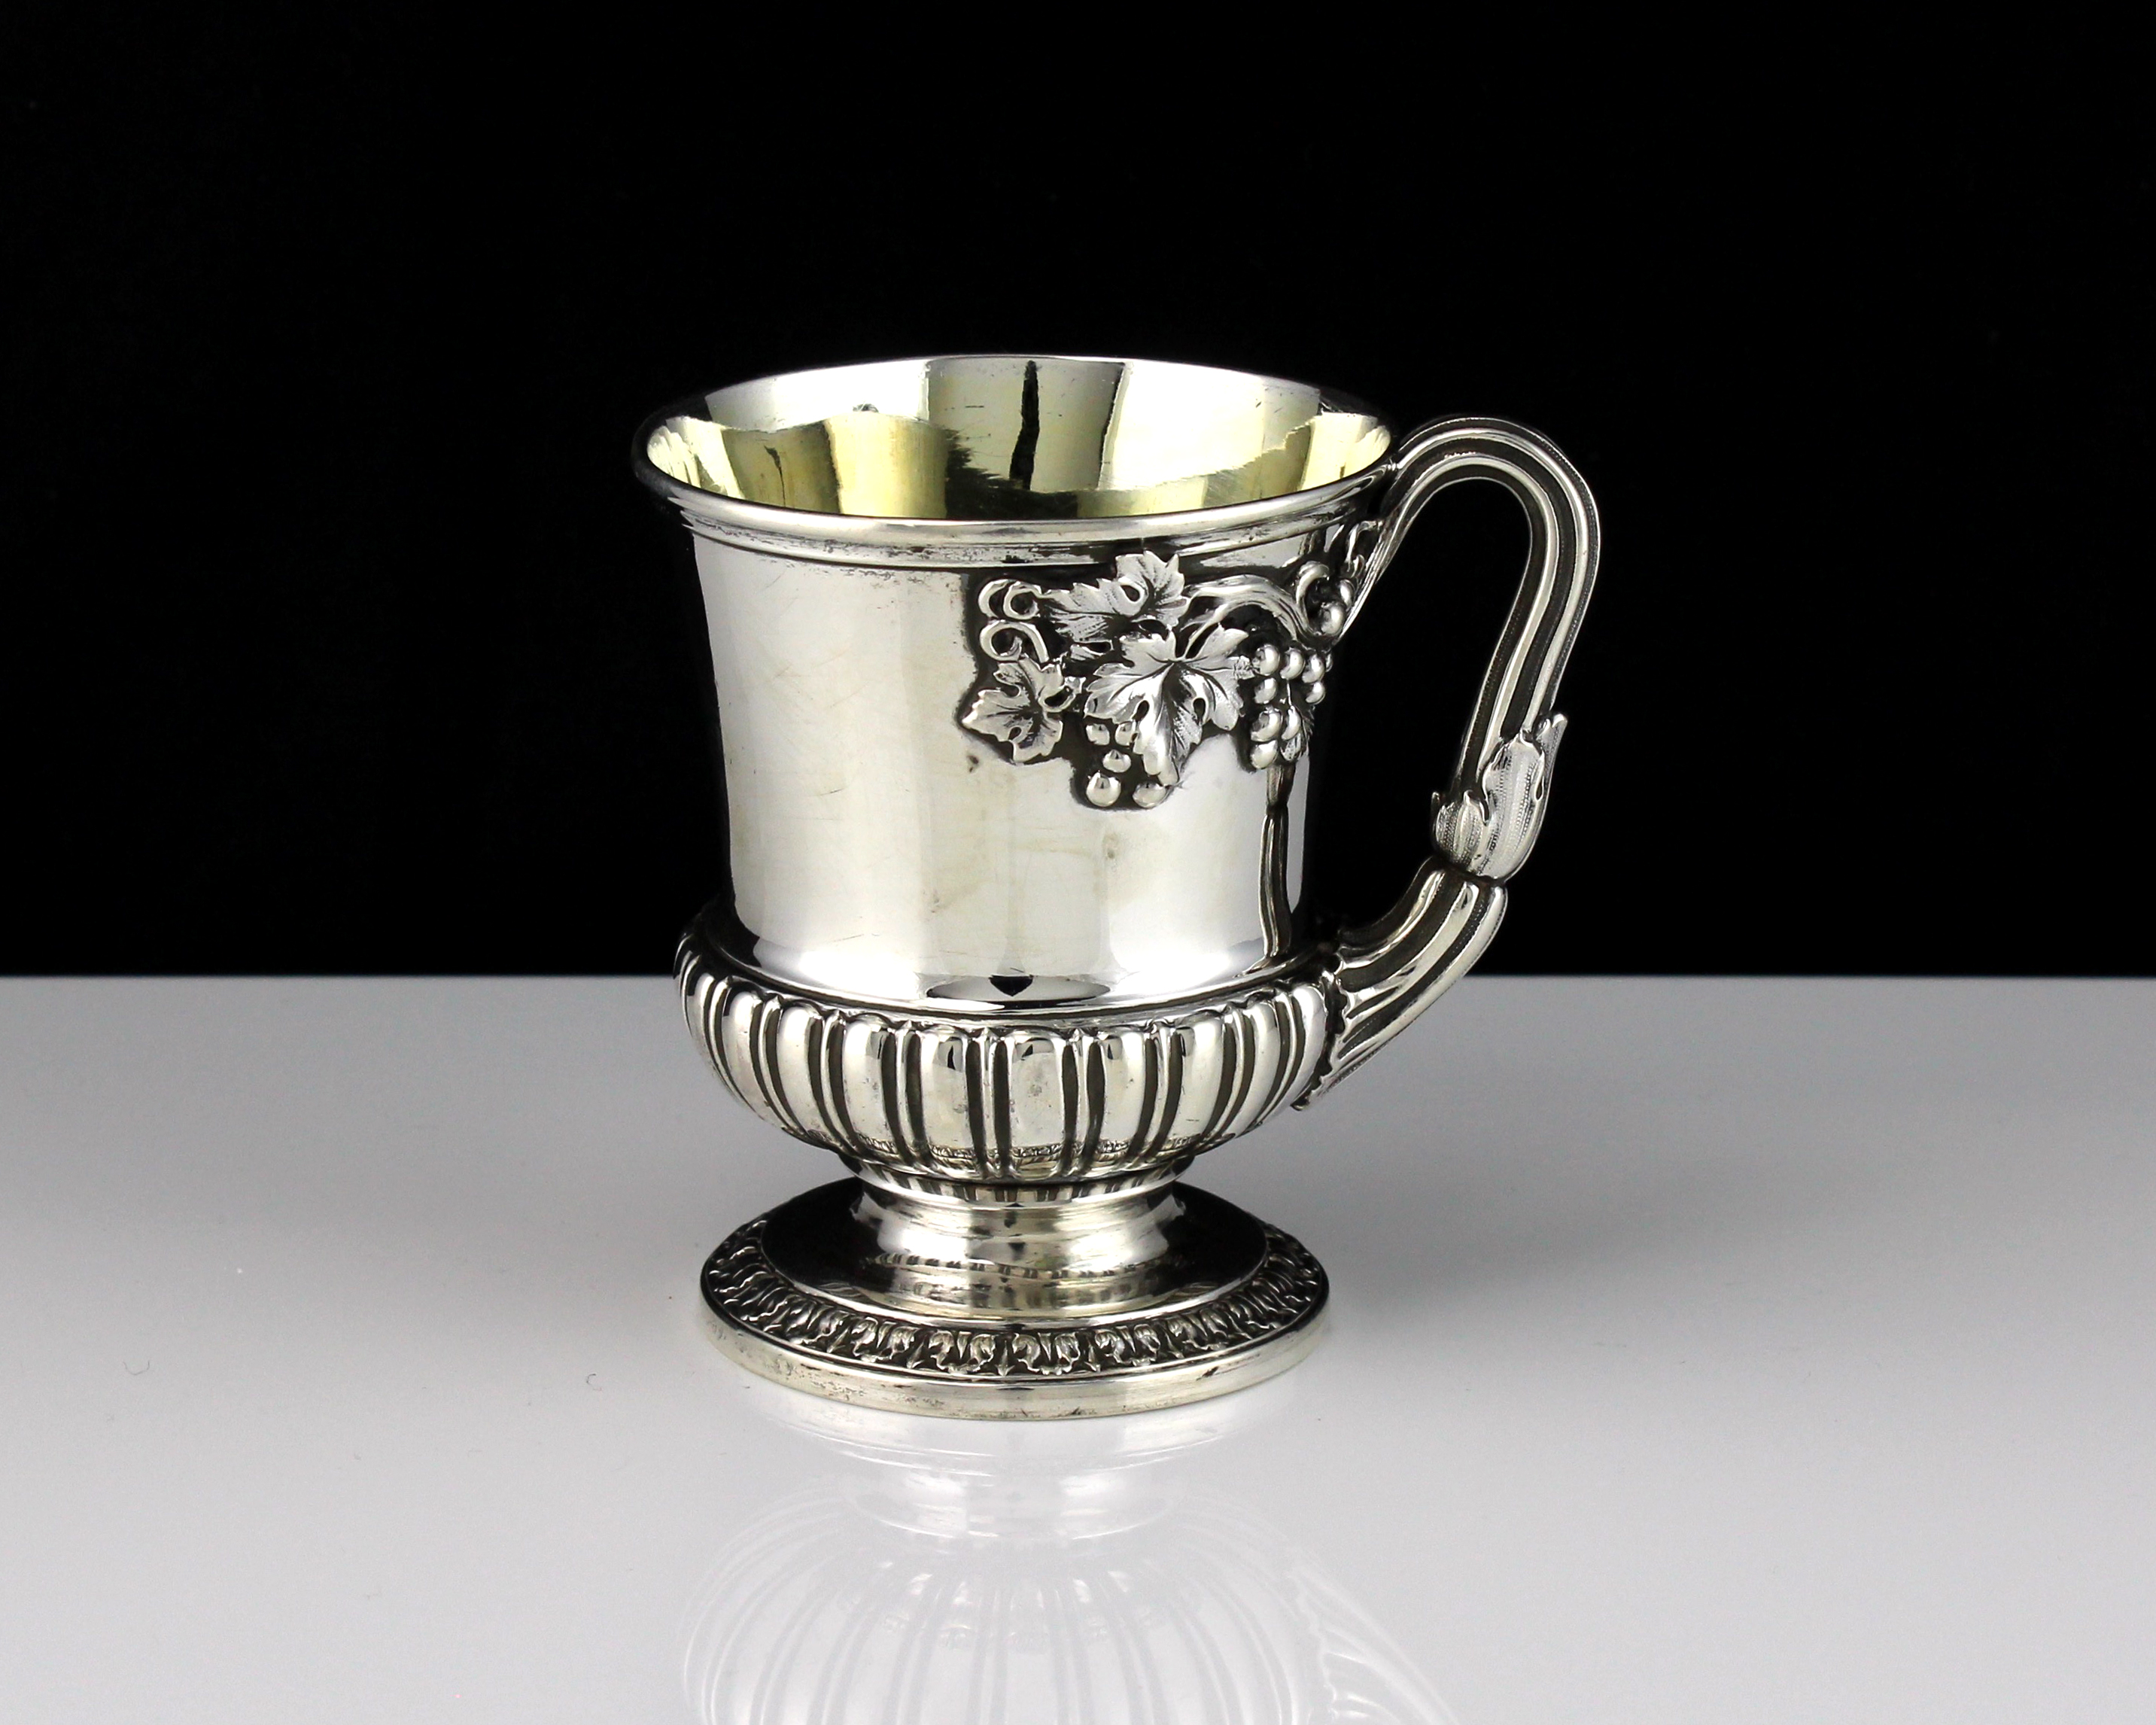 An antique George IV Sterling Silver christening cup / mug by Paul Storr, London 1826 of Campana